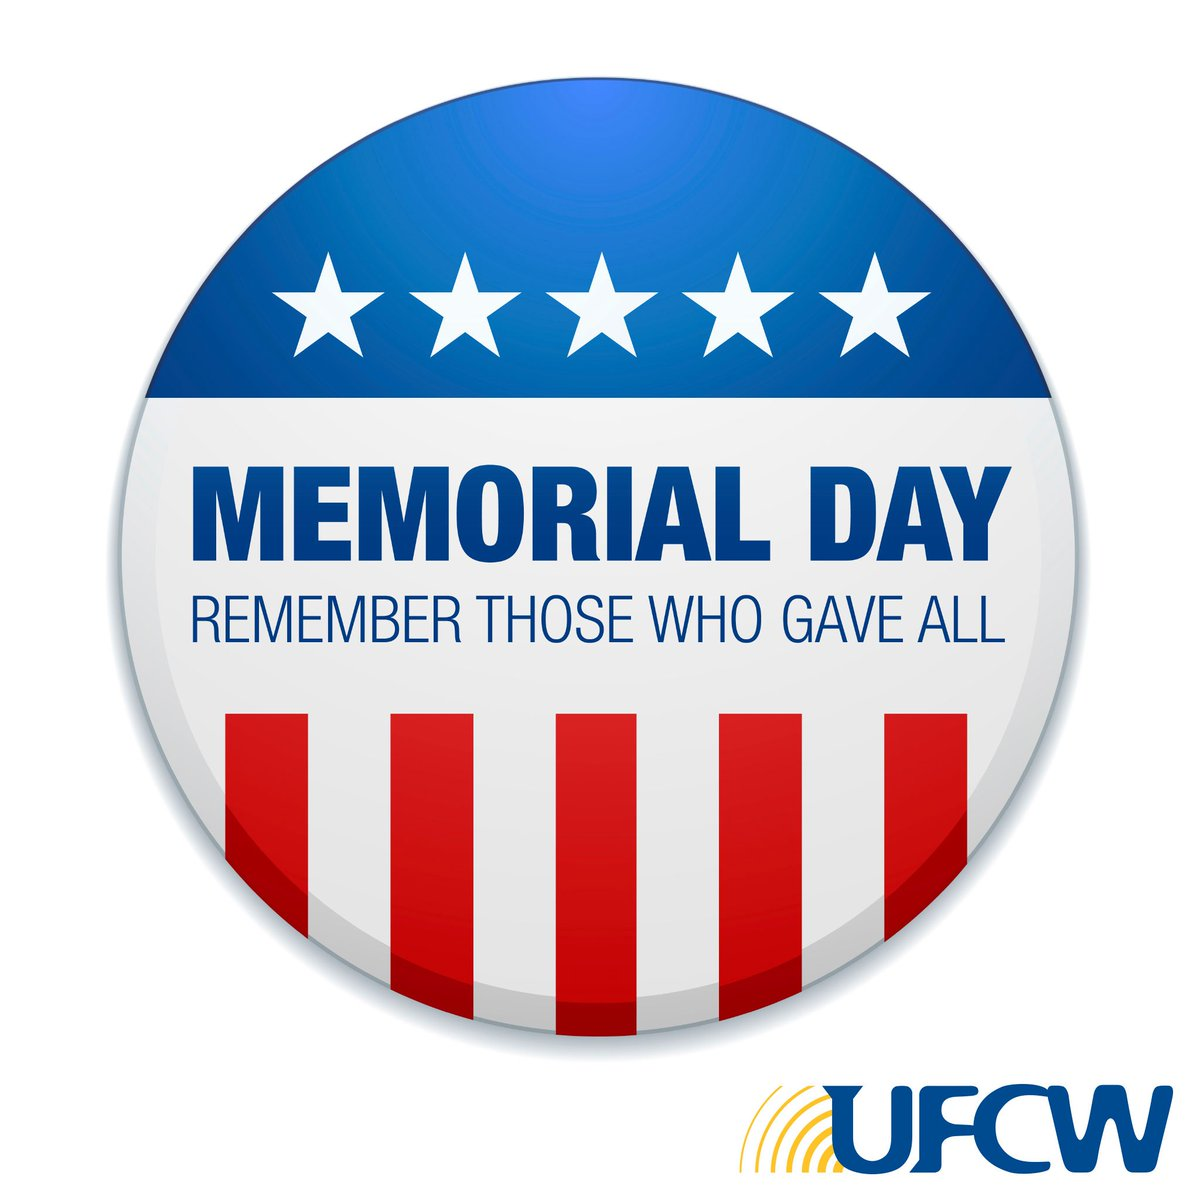 As we enjoy our #MemorialDay weekends, take a moment to remember those who sacrificed for the red, white, and blue. https://t.co/8Ibtp7f4r1